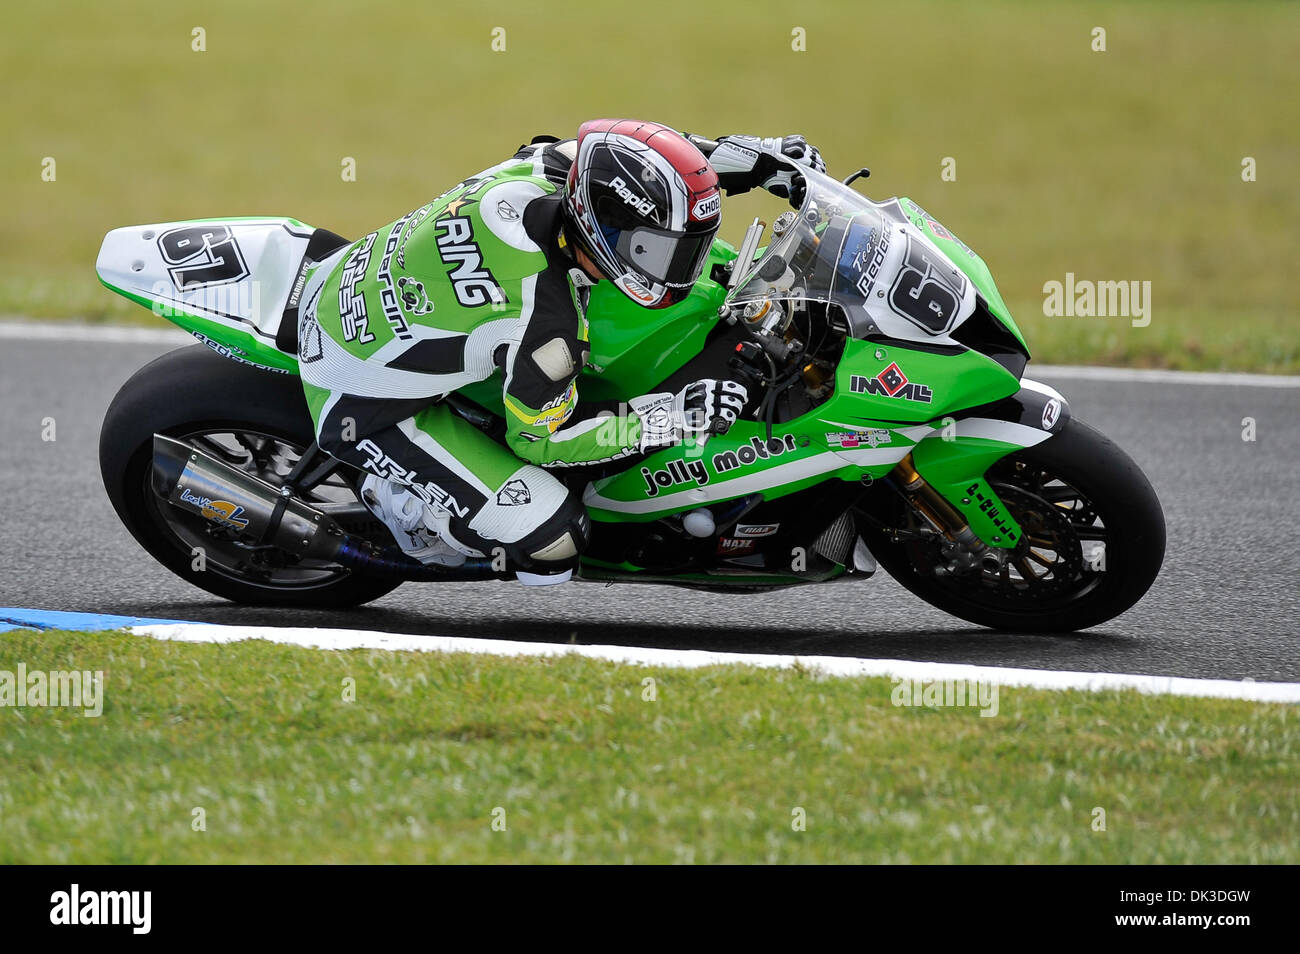 Feb. 27, 2011 - Phillip Island, Victoria, Australia - Bryan Staring (AUS) riding the Kawasaki ZX-10R (67) of the Stock Photo